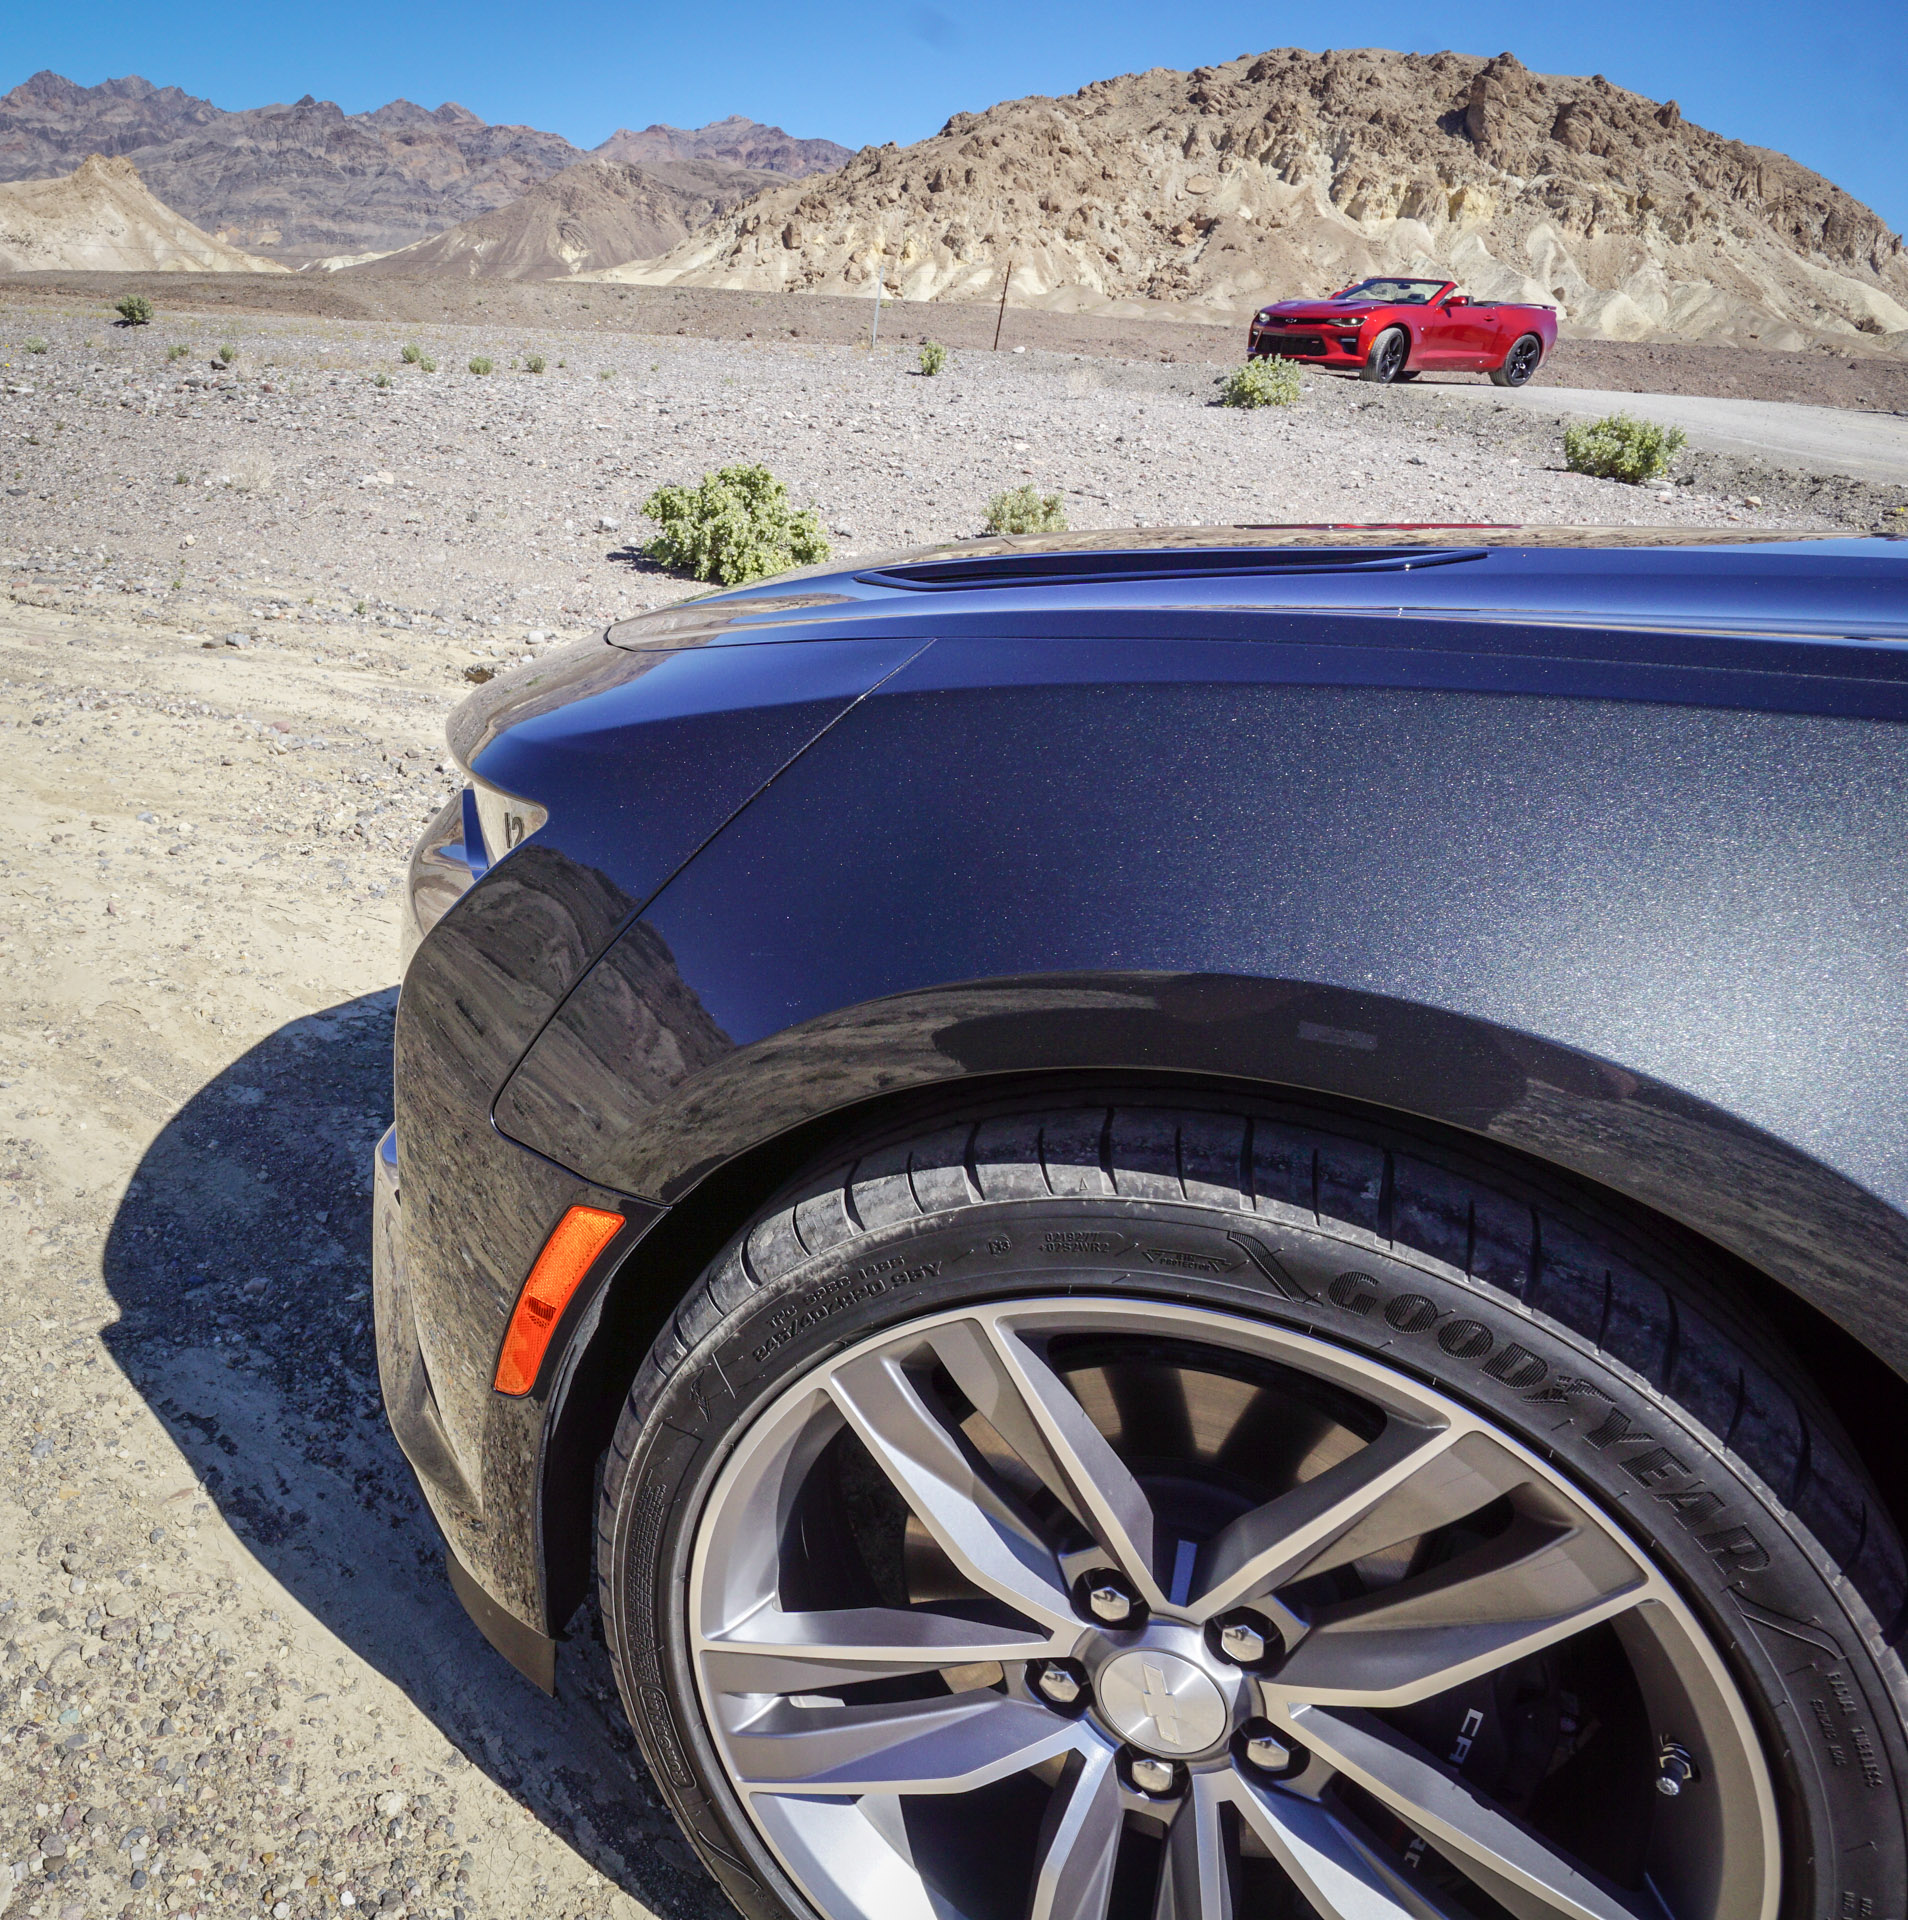 2016 Chevrolet Ss Camshaft: First Drive Review: 2016 Chevrolet Camaro SS Convertible